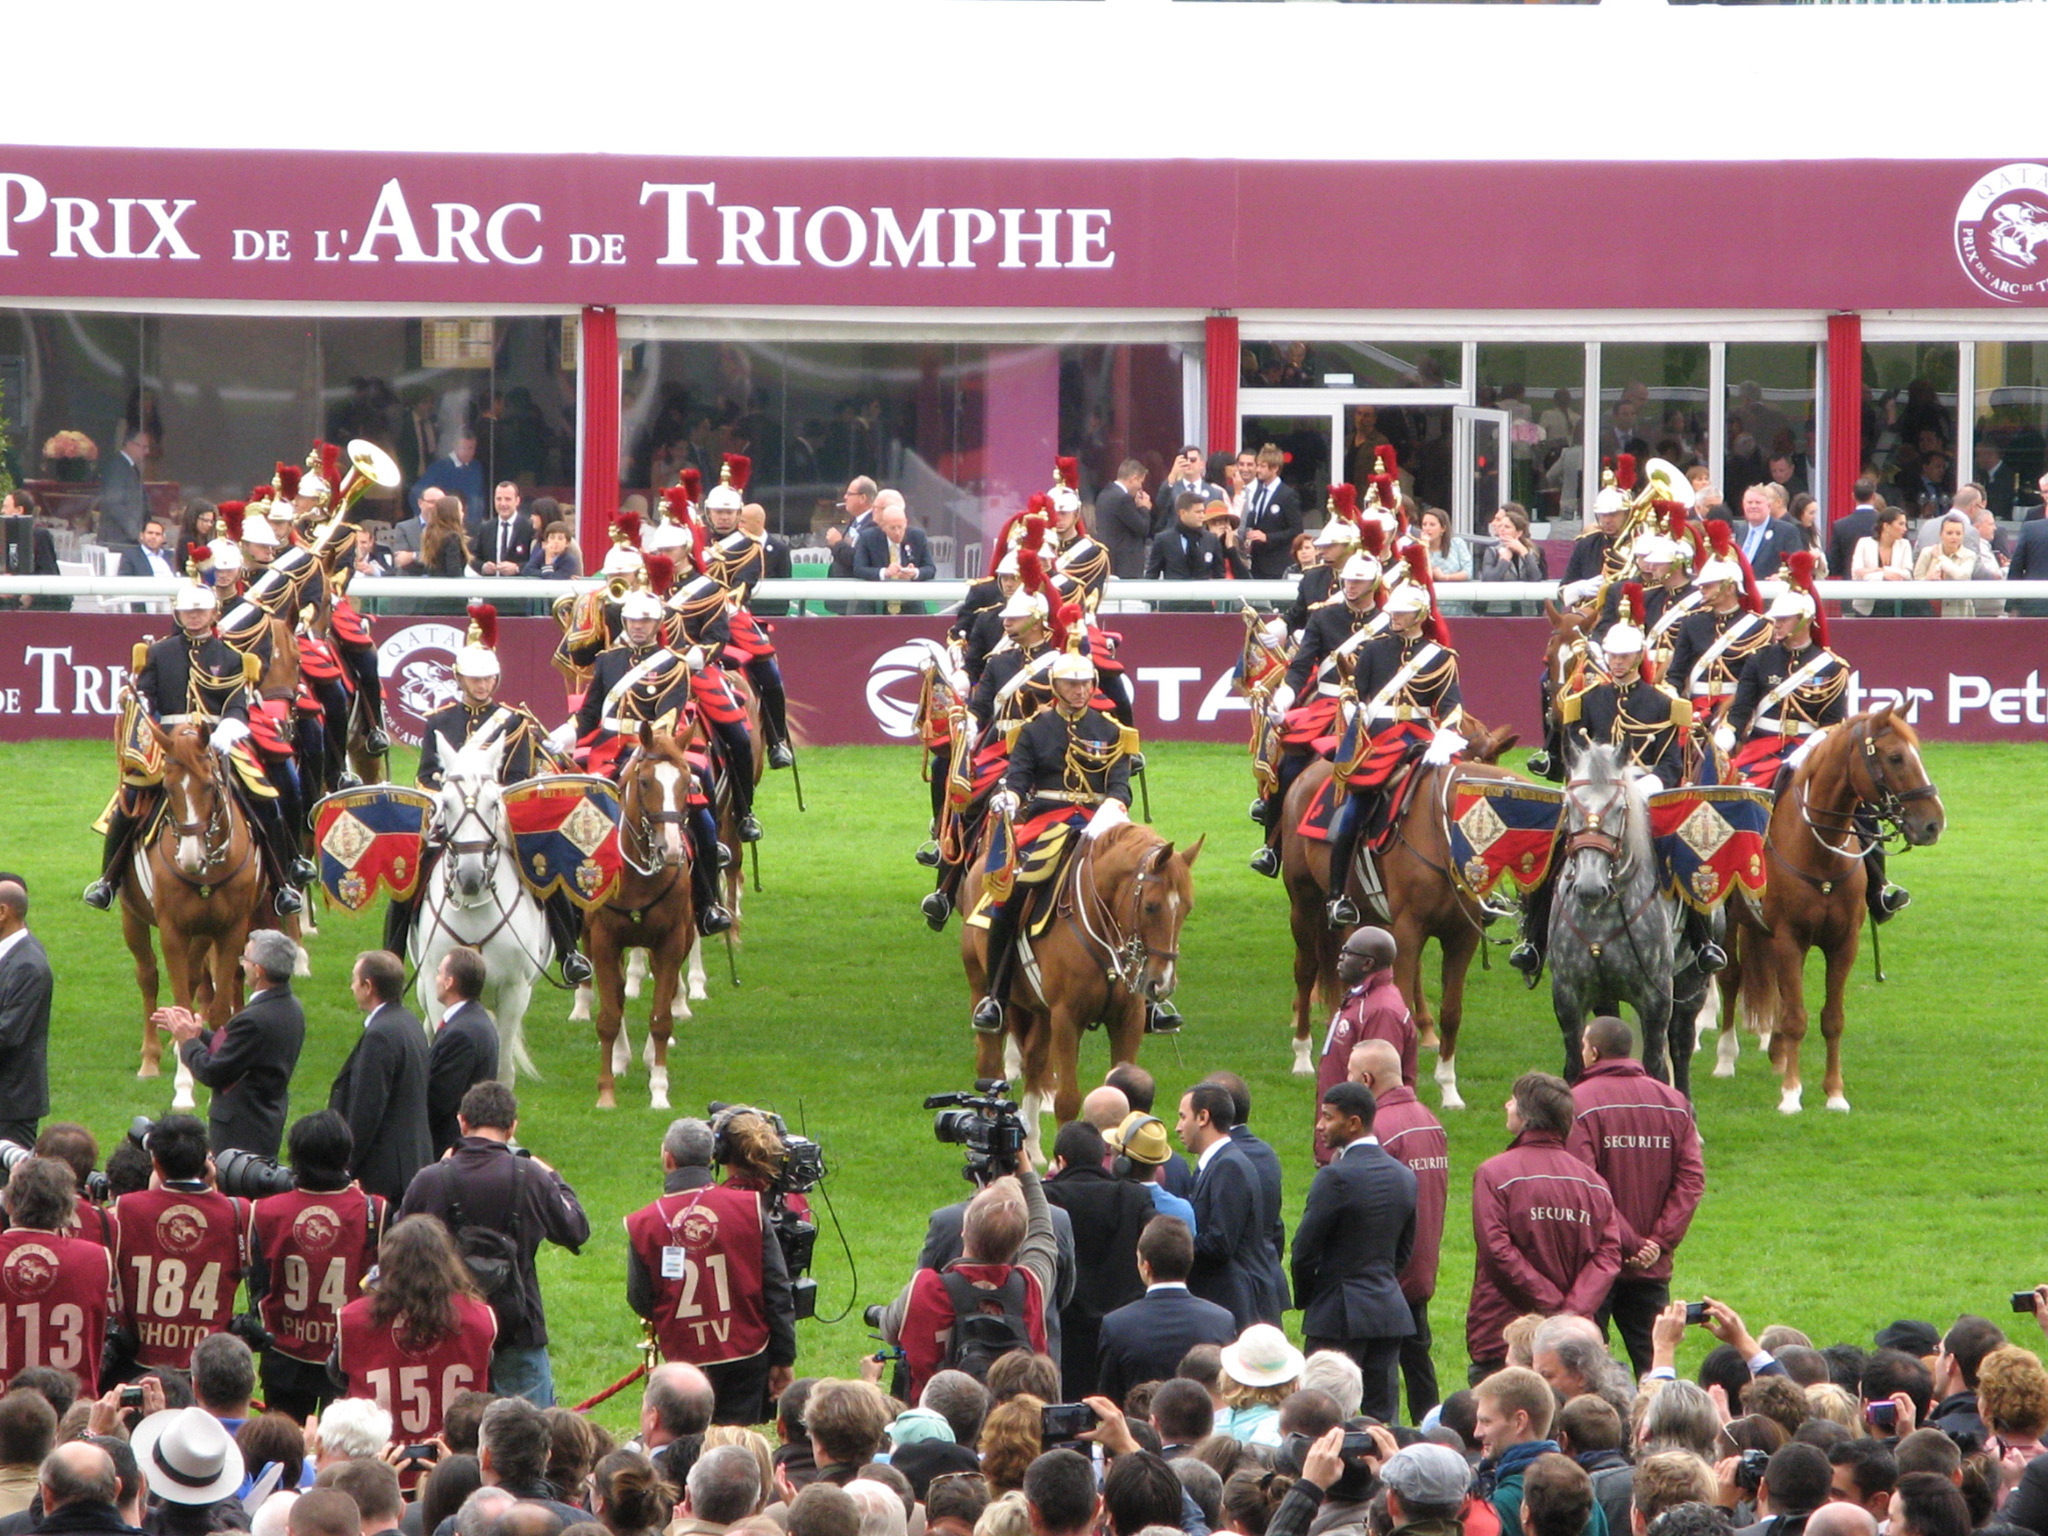 Arc de Triomphe horse race at the Hippodrome de Longchamp